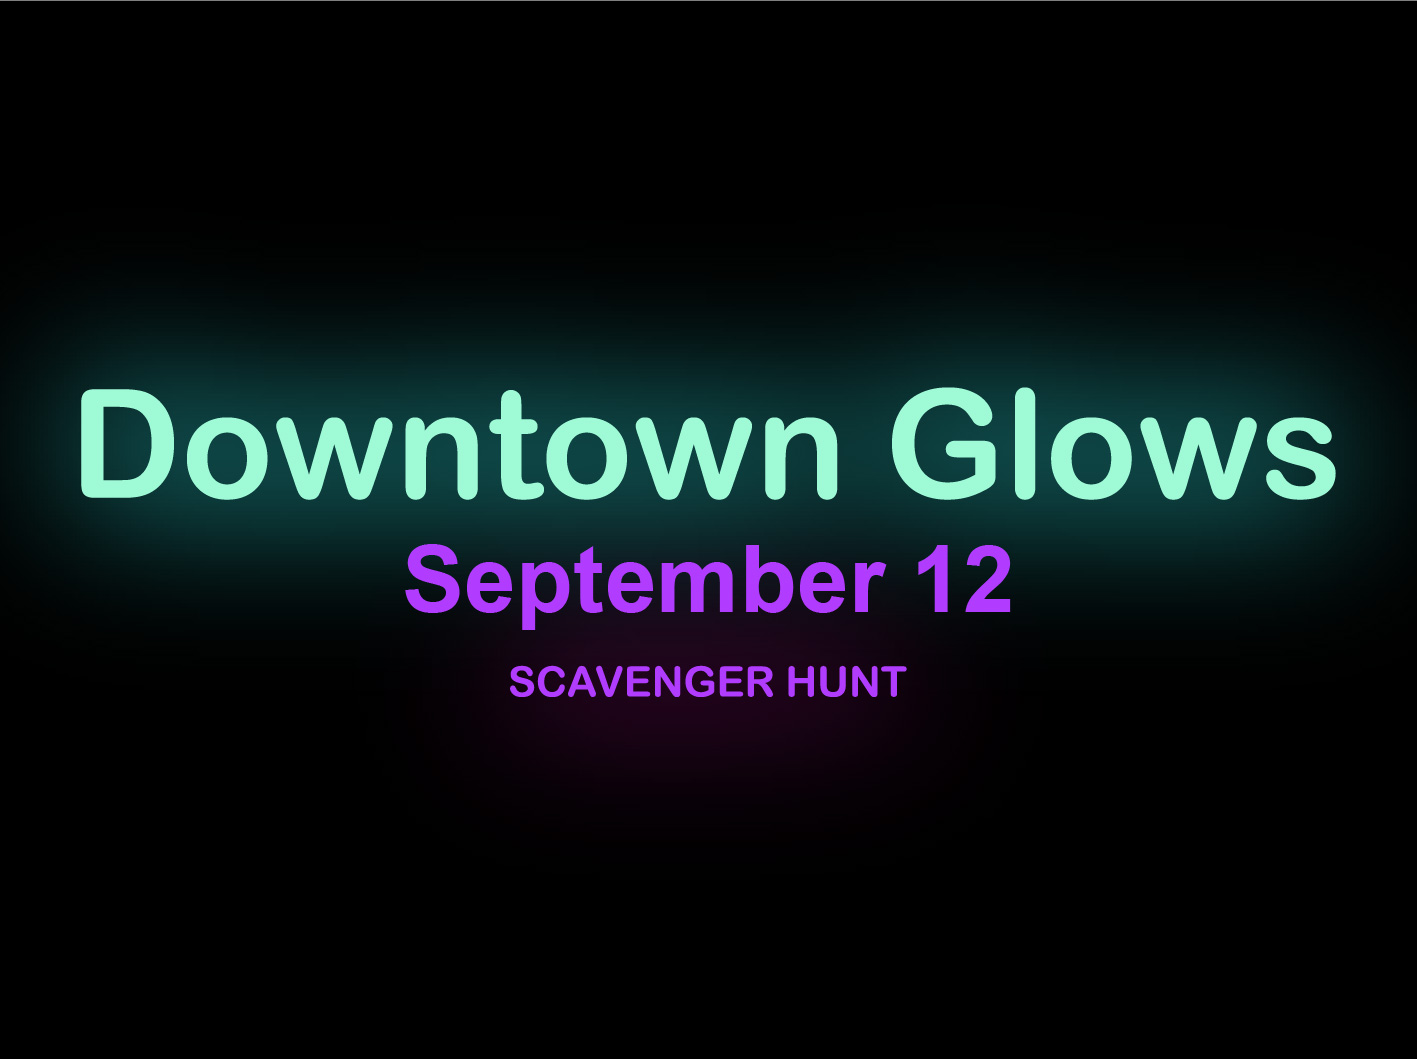 Downtown Glows event scavenger hunt